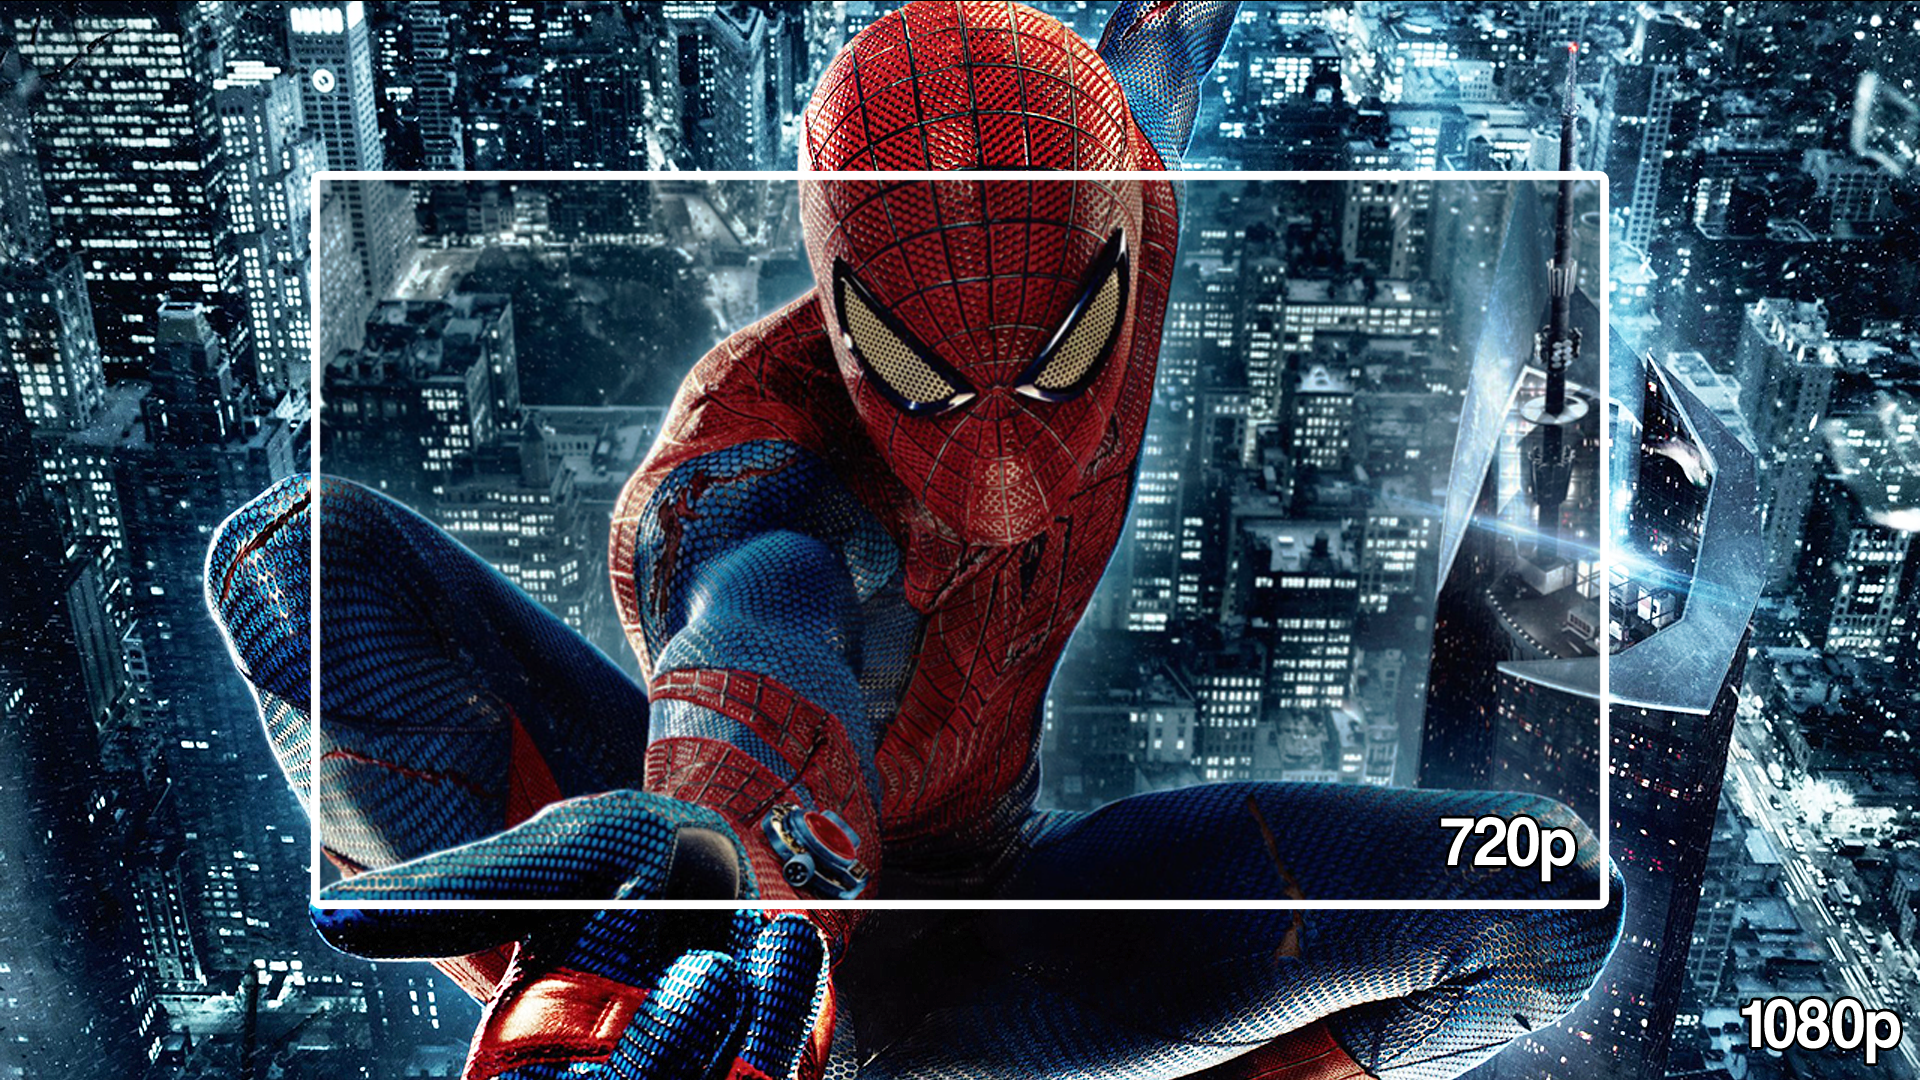 720p vs 1080p Amazing Spider-Man Demo